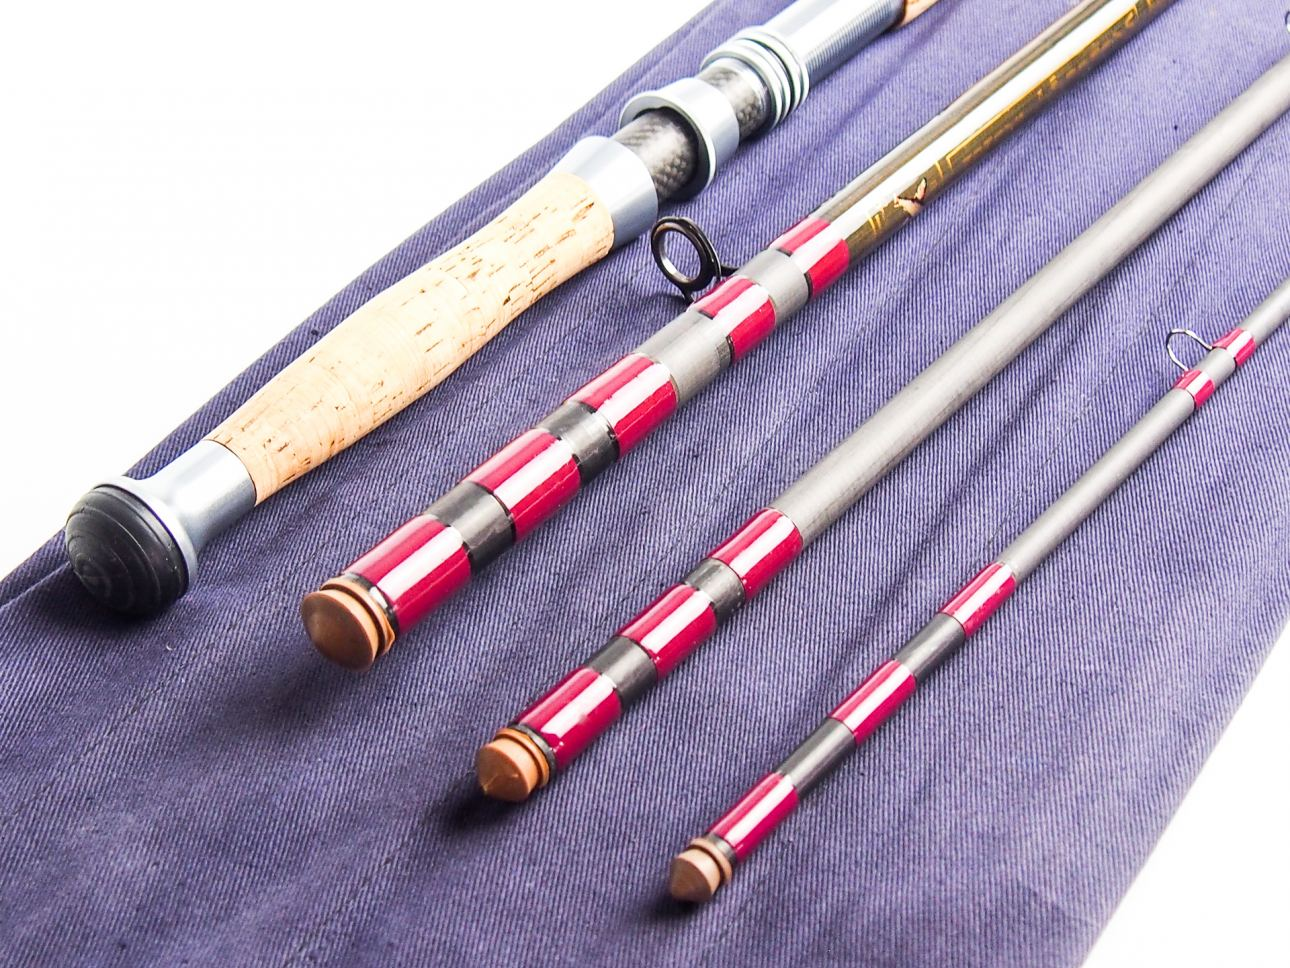 Bruce walker salmon 16 6 3 piece 10 11 salmon fly for 3 piece fishing rod